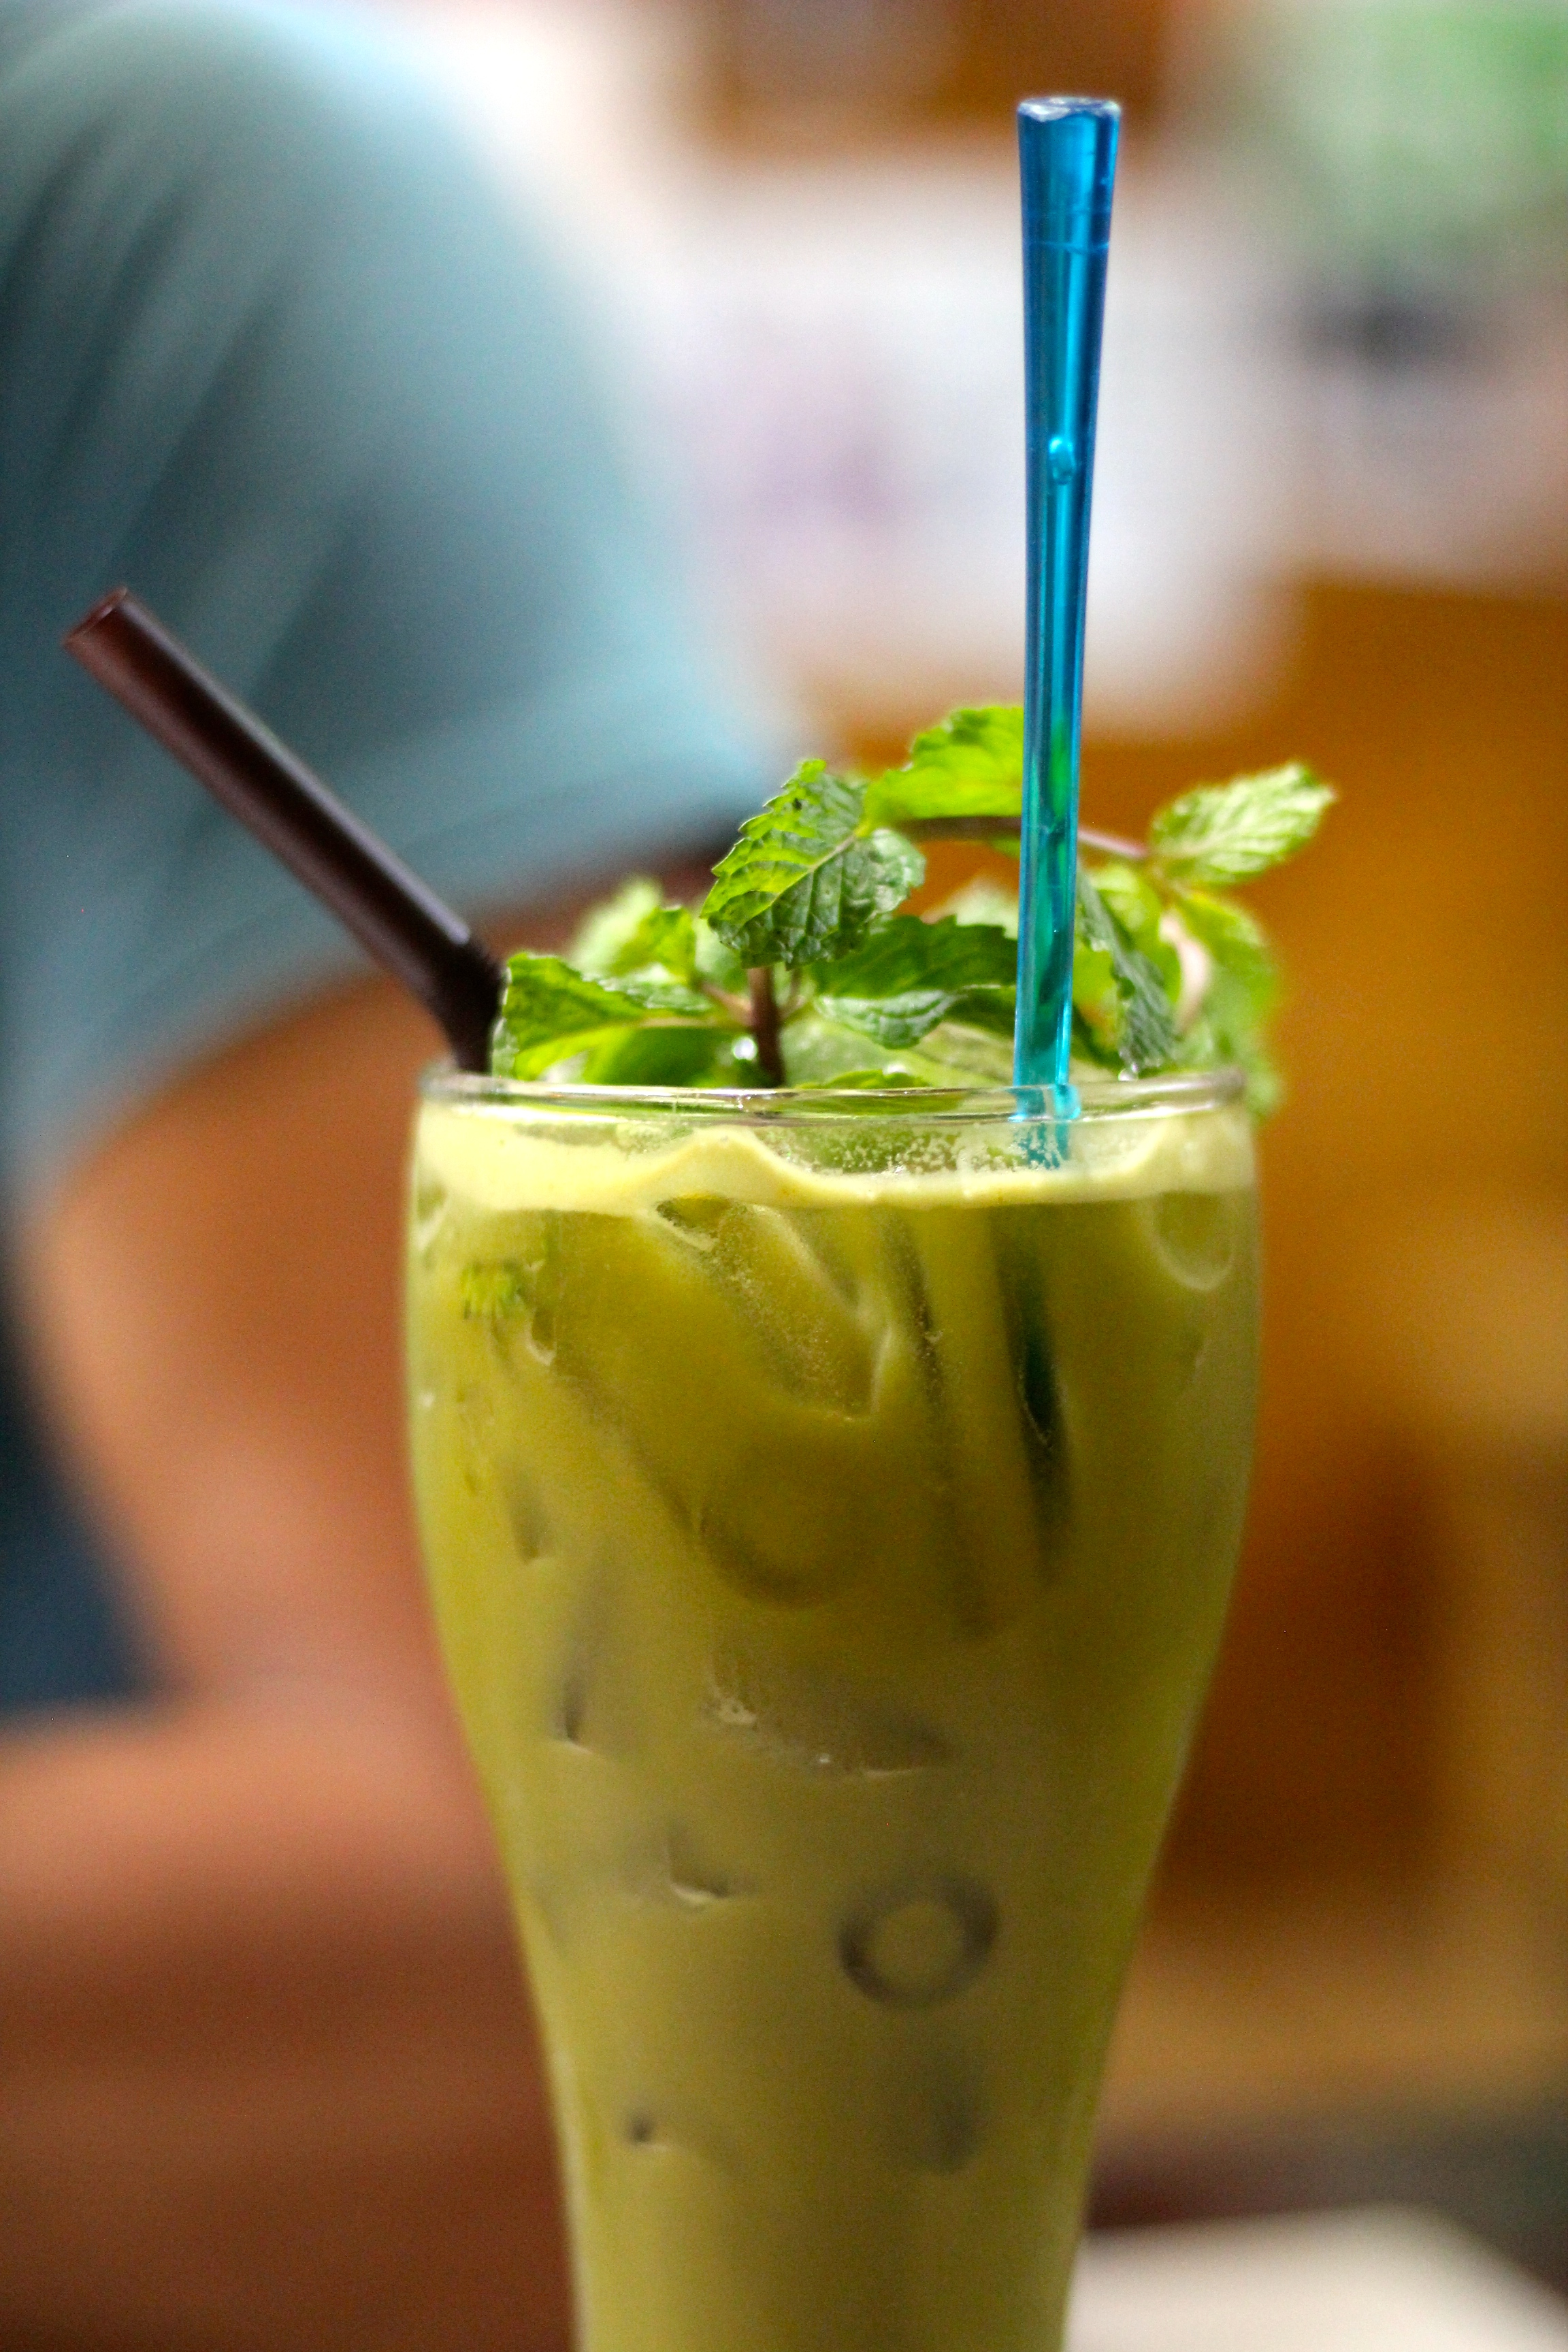 Ginger mint drink from the Bamboo Bee